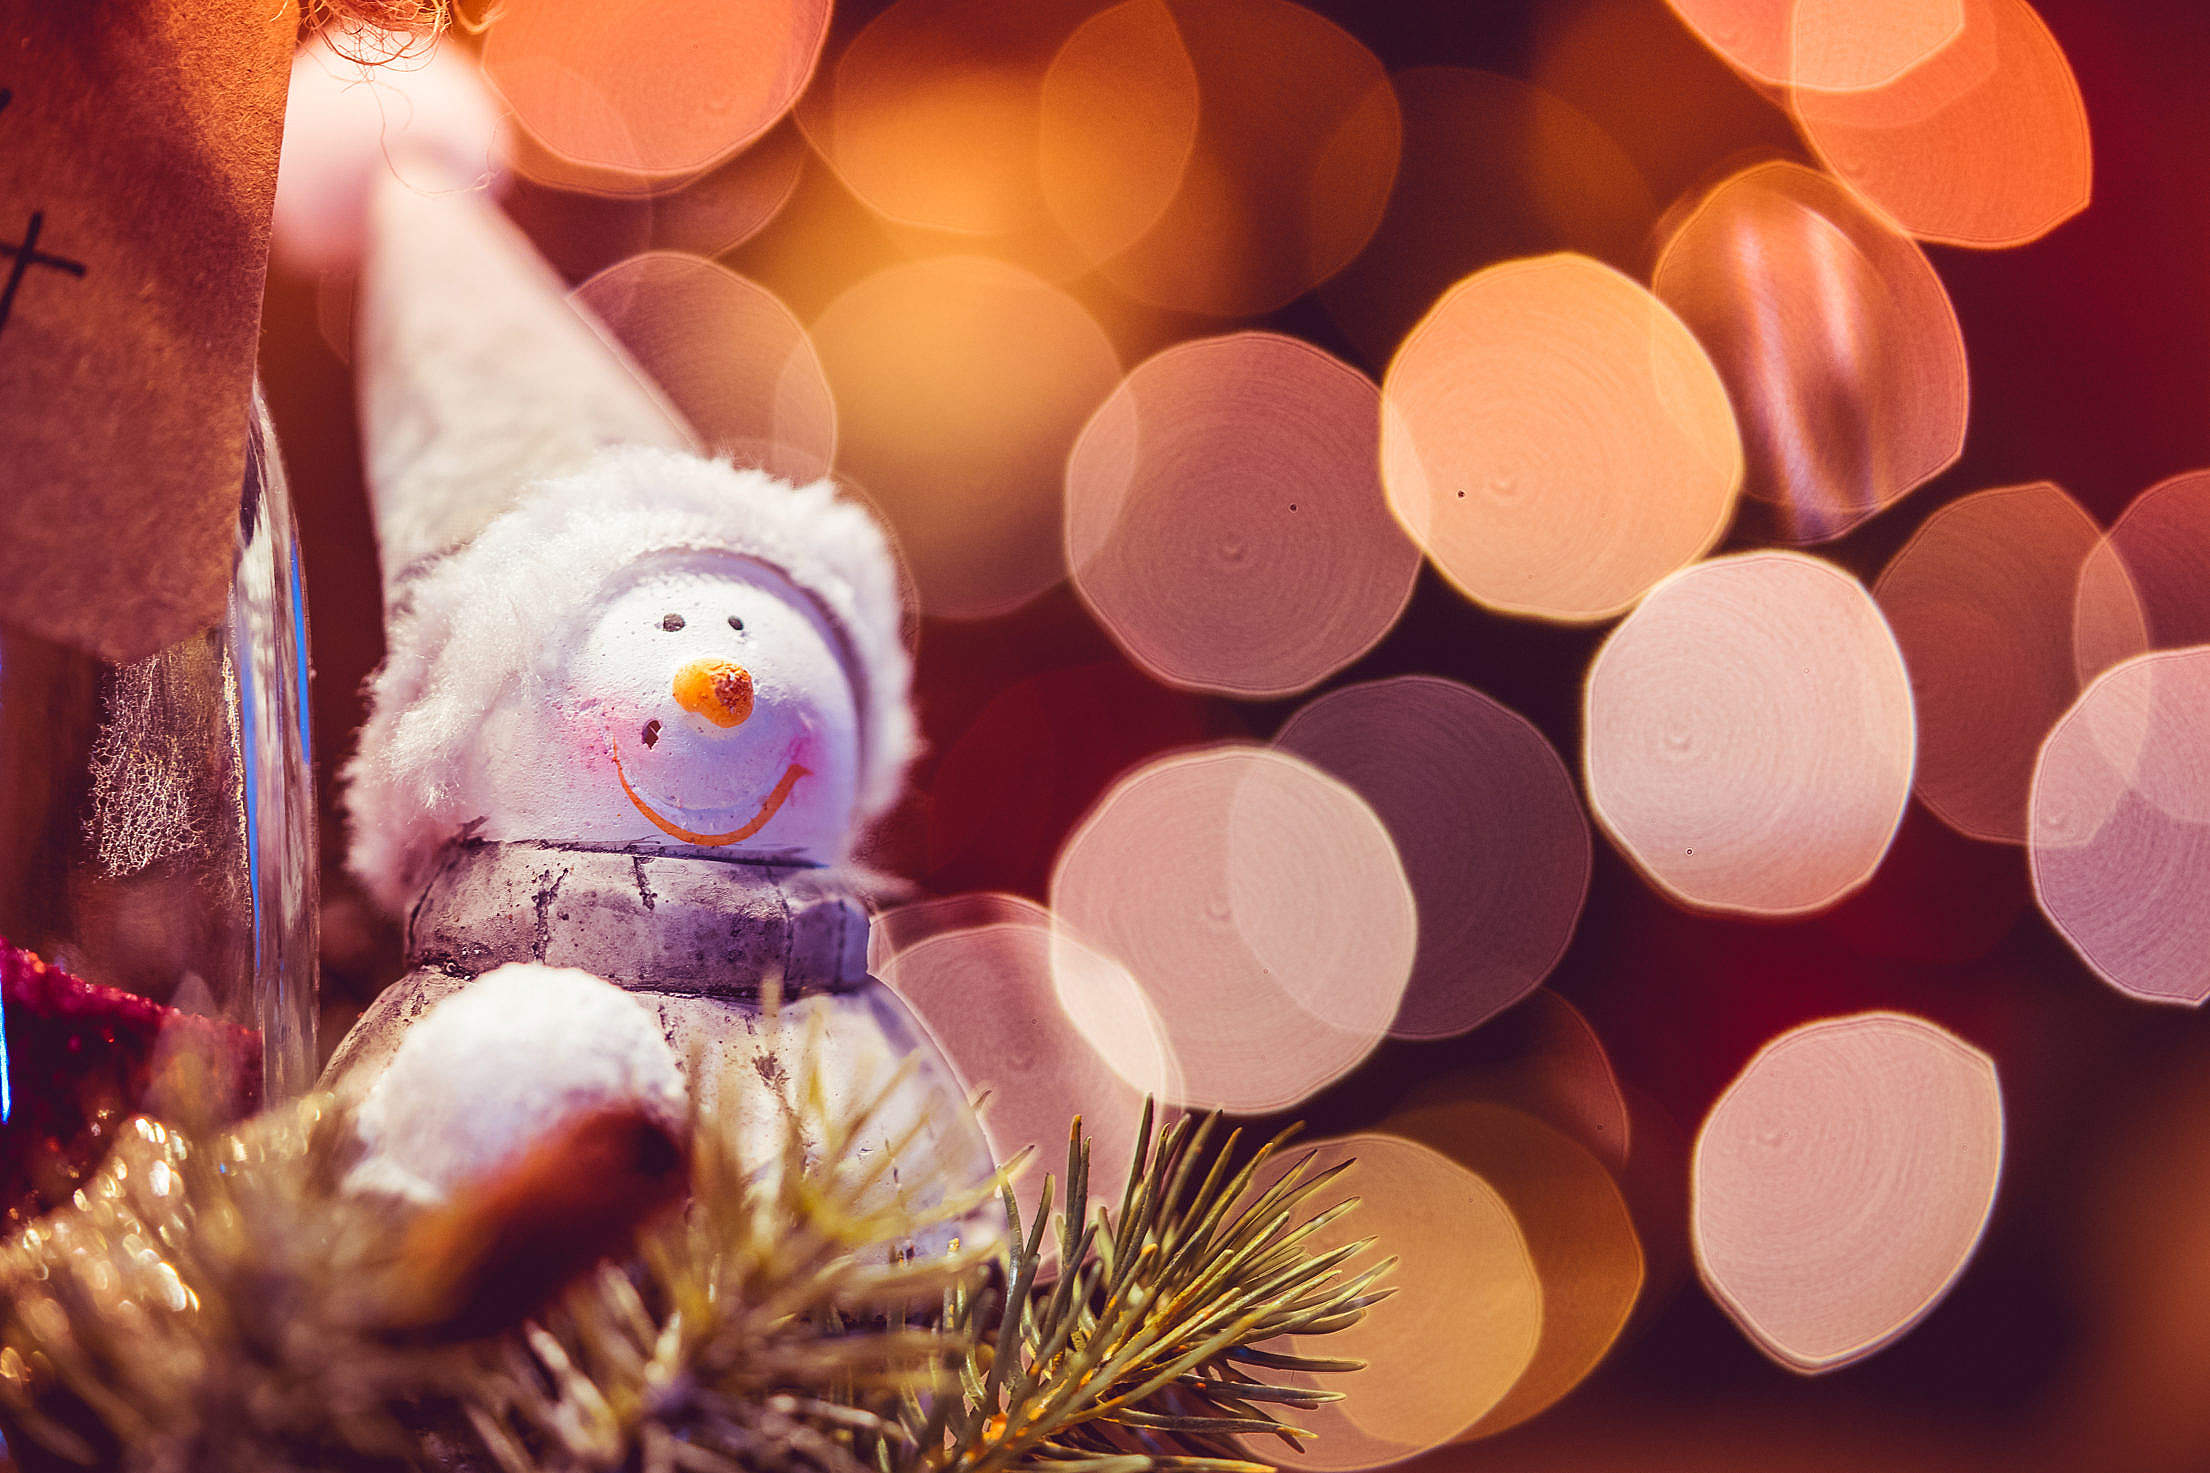 Snowman Decoration with Christmas Bokeh Free Stock Photo Download ...